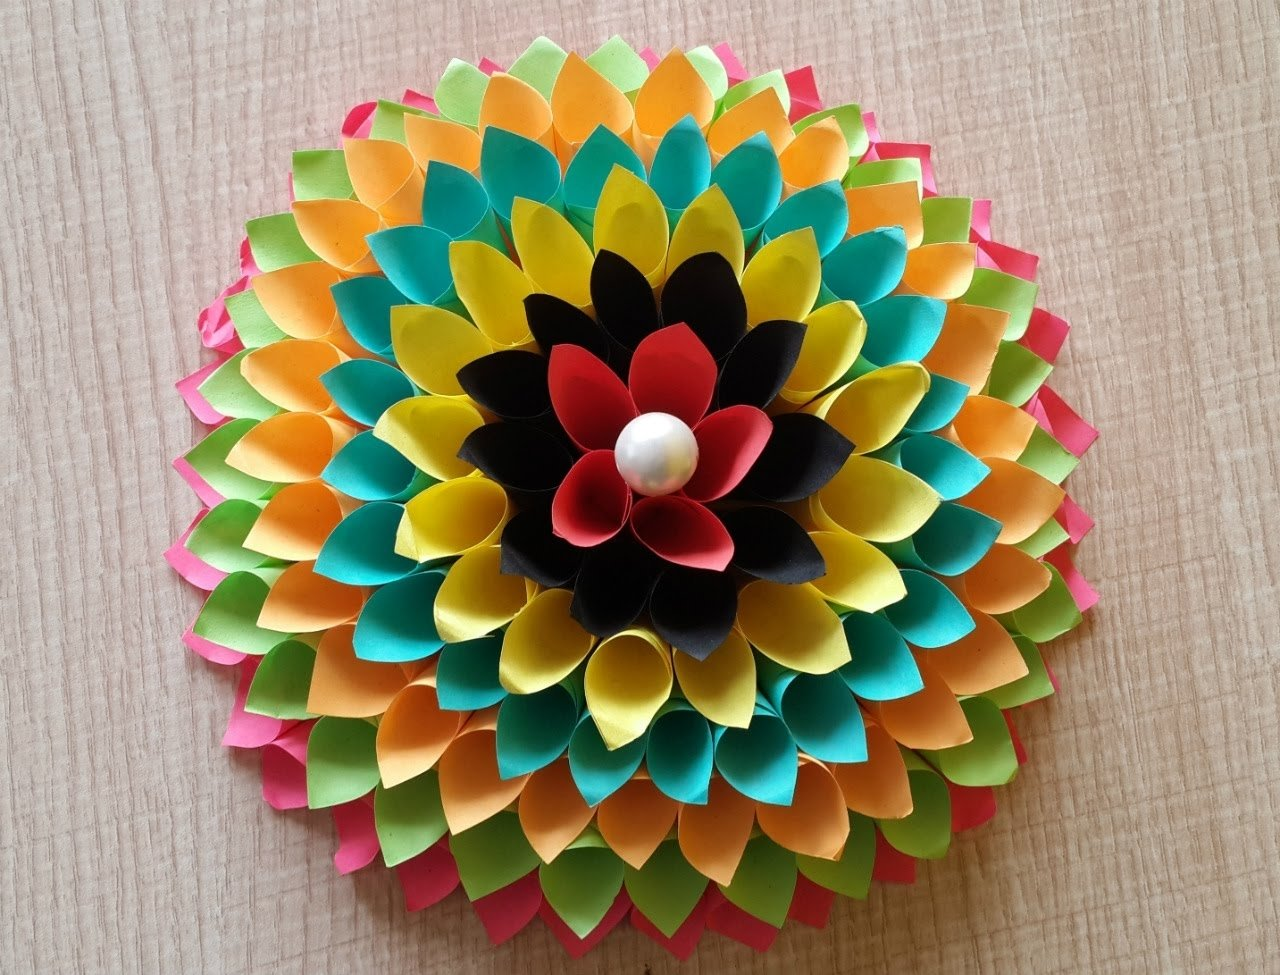 10 Attractive Art And Craft Ideas For Adults amazing easy art craft with awesome decoration ideas youtube 3 2021